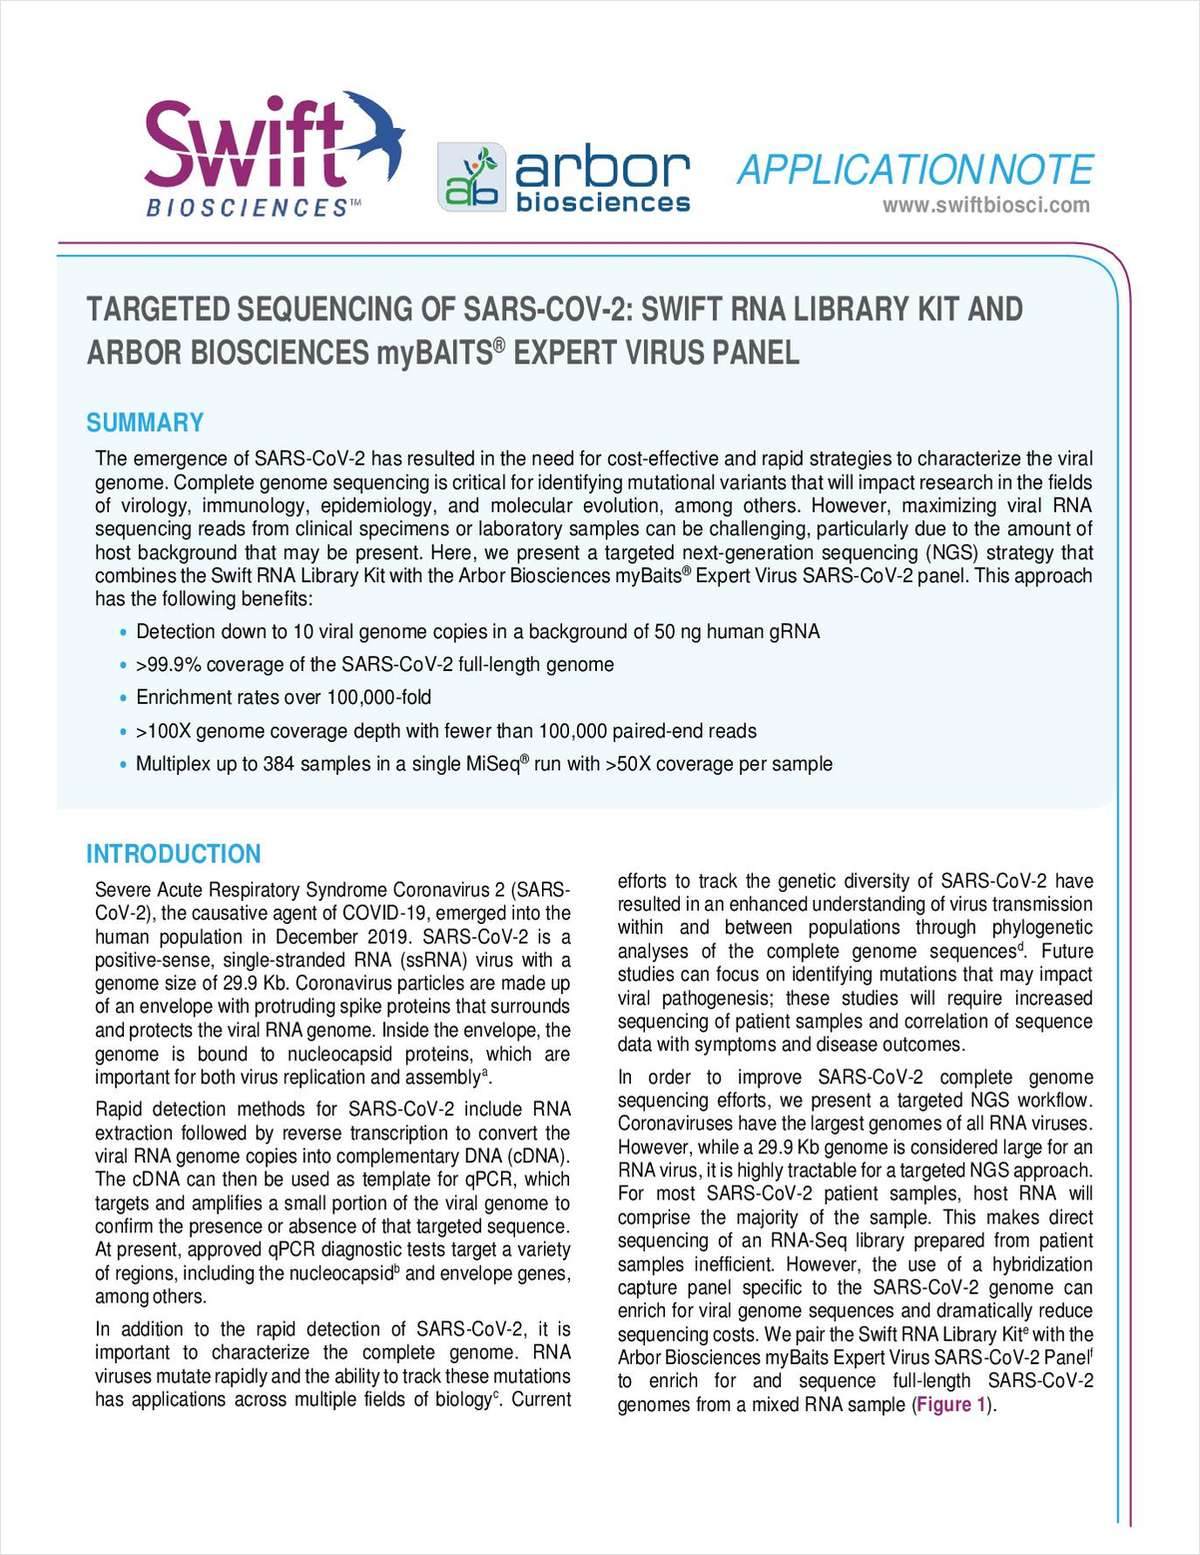 Targeted Sequencing of SARS-COV-2: Swift RNALibrary Kit and Arbor Biosciences myBAITS Expert Virus Panel